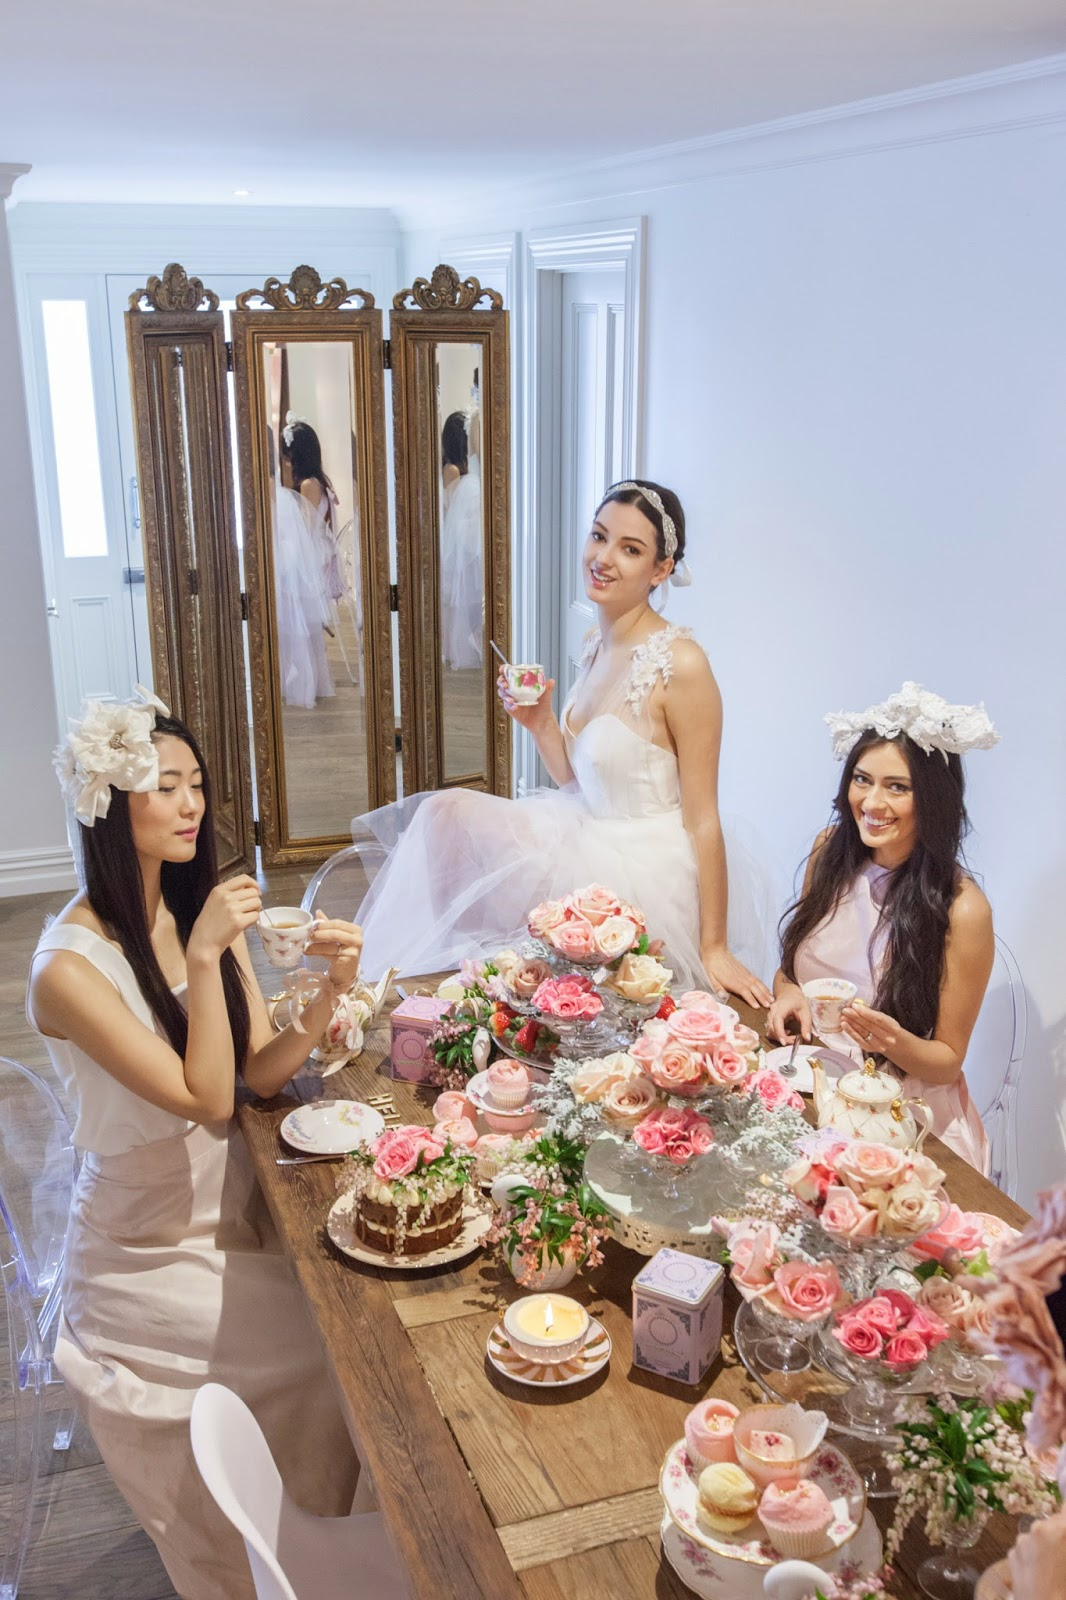 Natalie Chans Very Whimsical Tea Party Natalie Chan Boutique